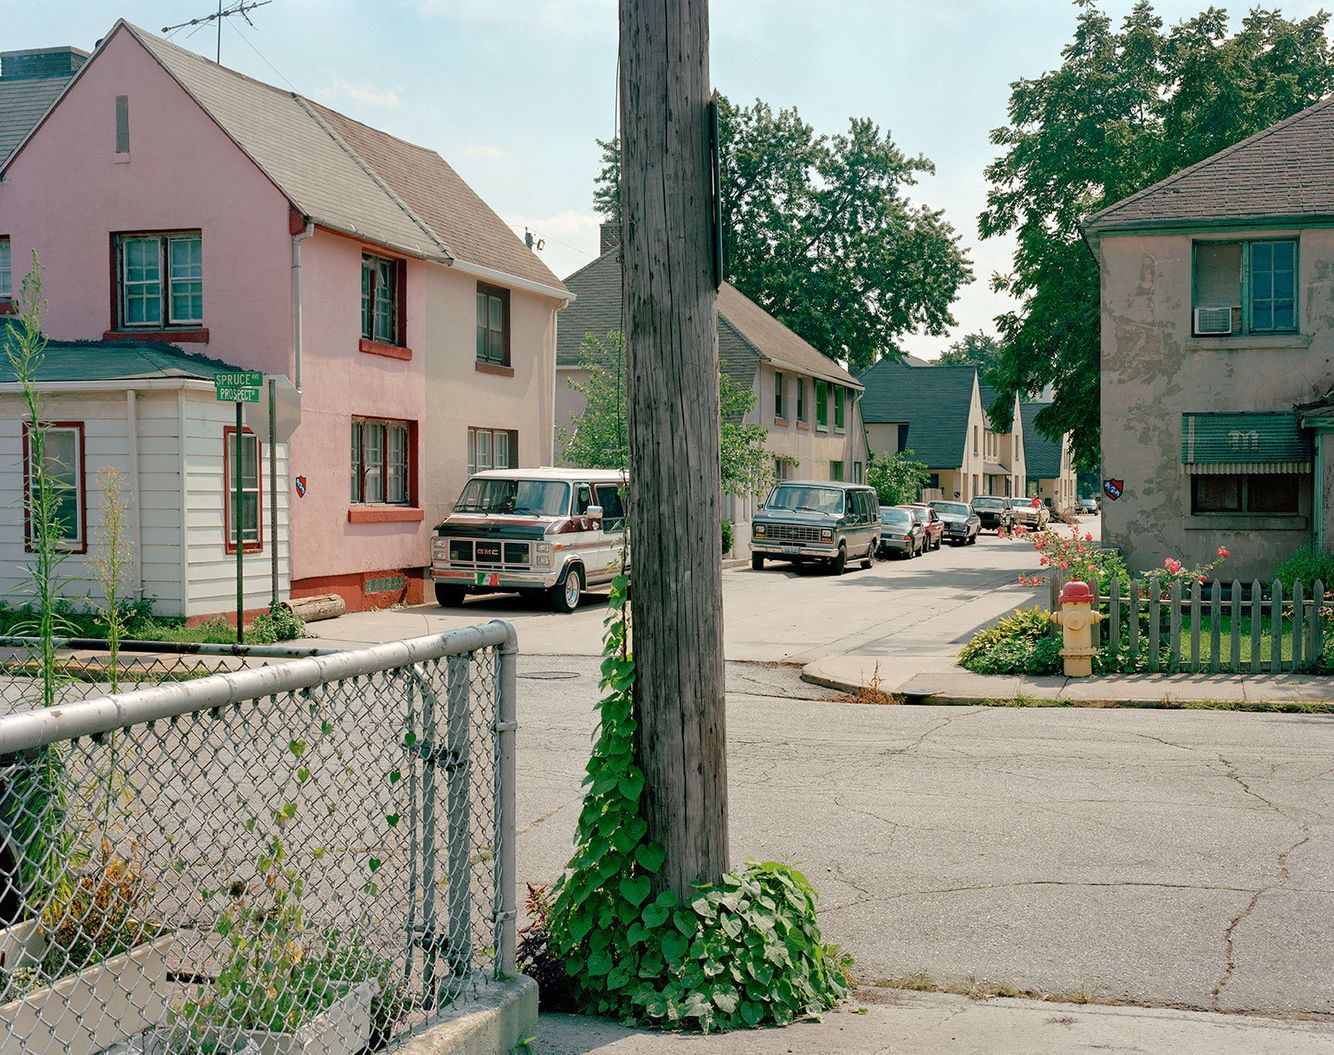 Prospect & Spruce Sts., Marktown, East Chicago IN 2003